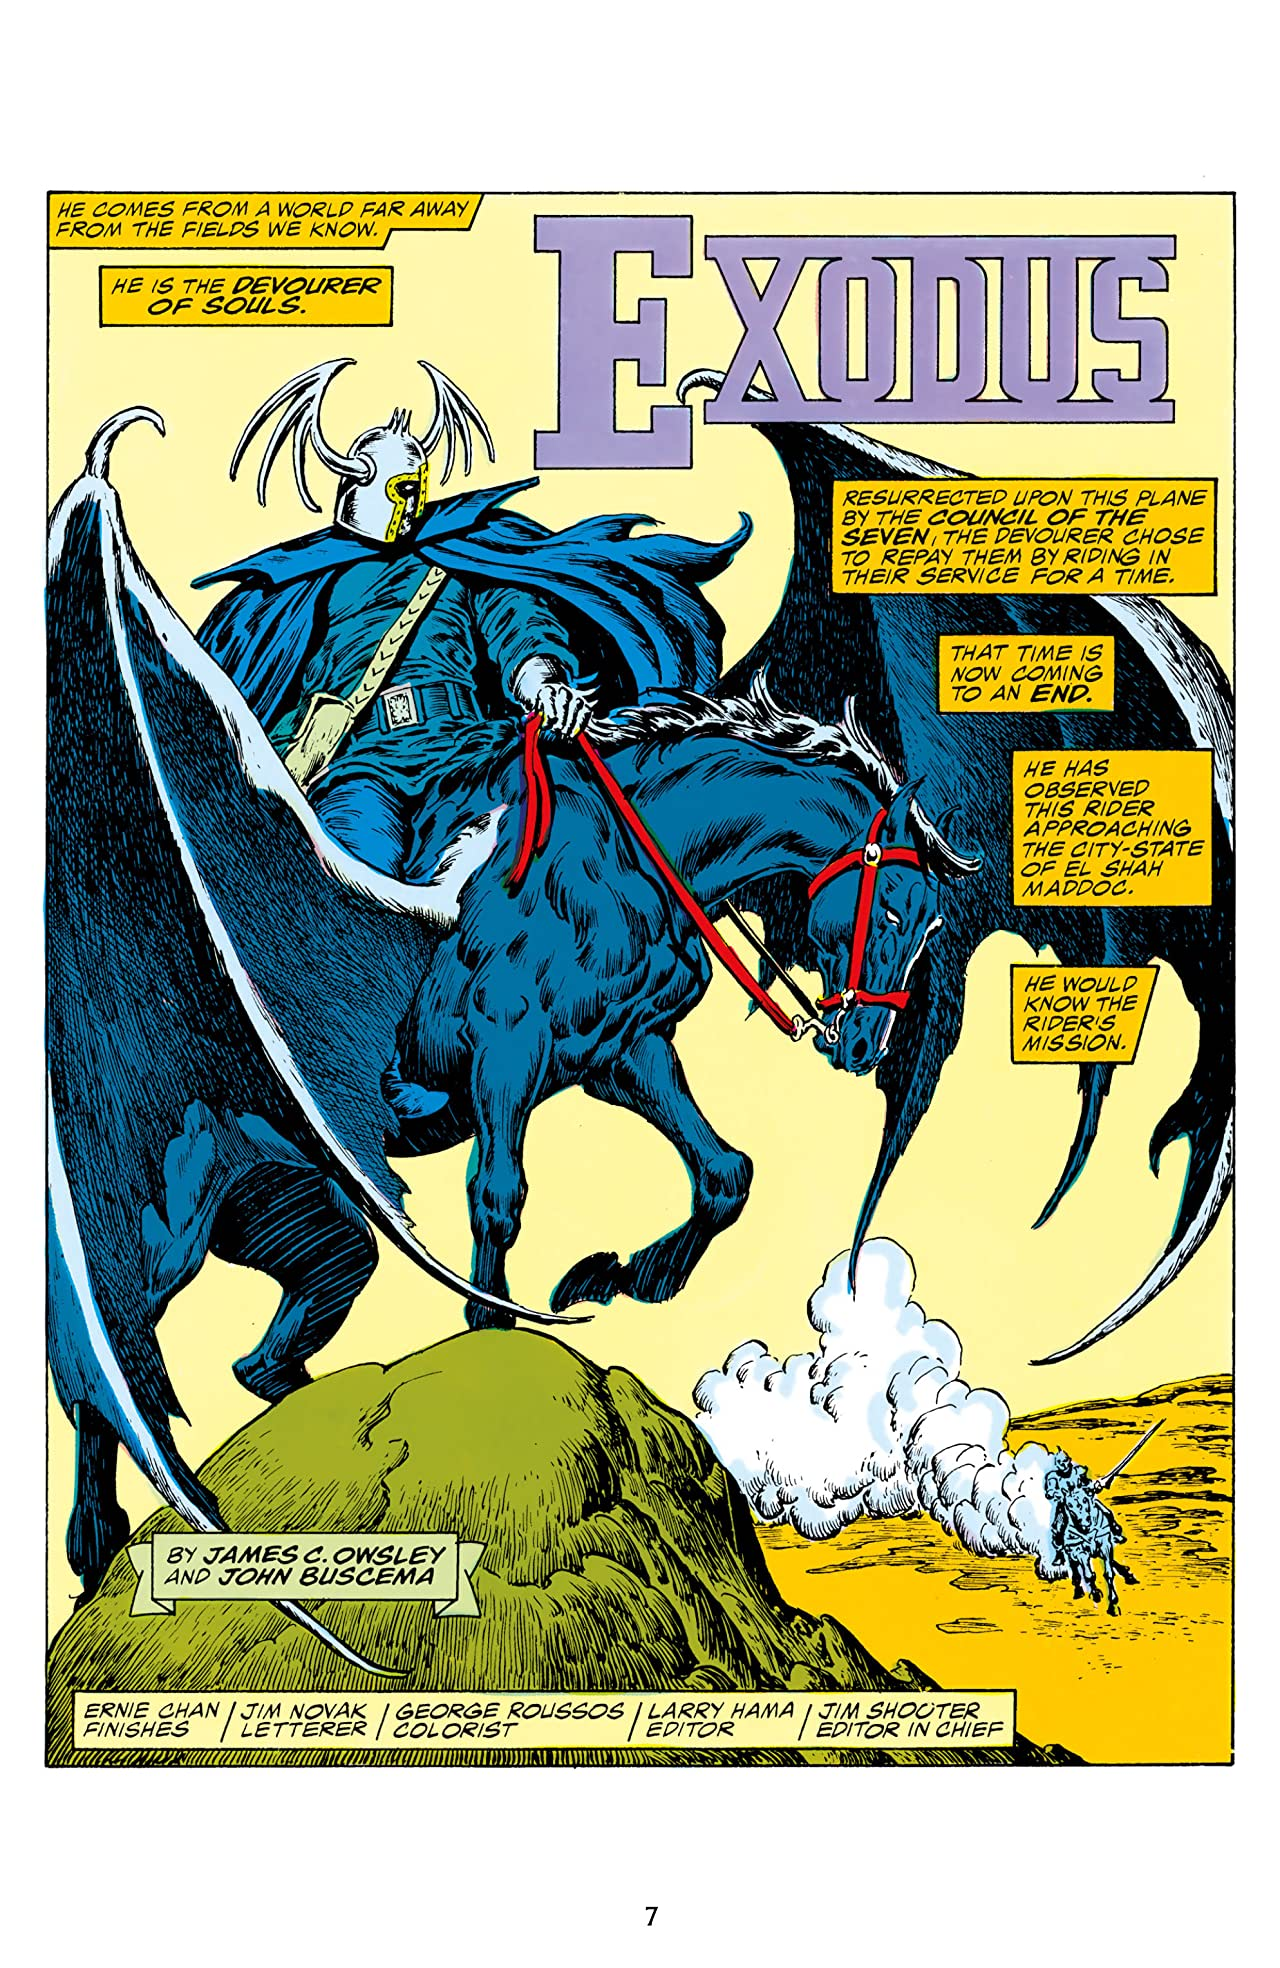 Chronicles of Conan Vol. 25: Exodus and Other Stories